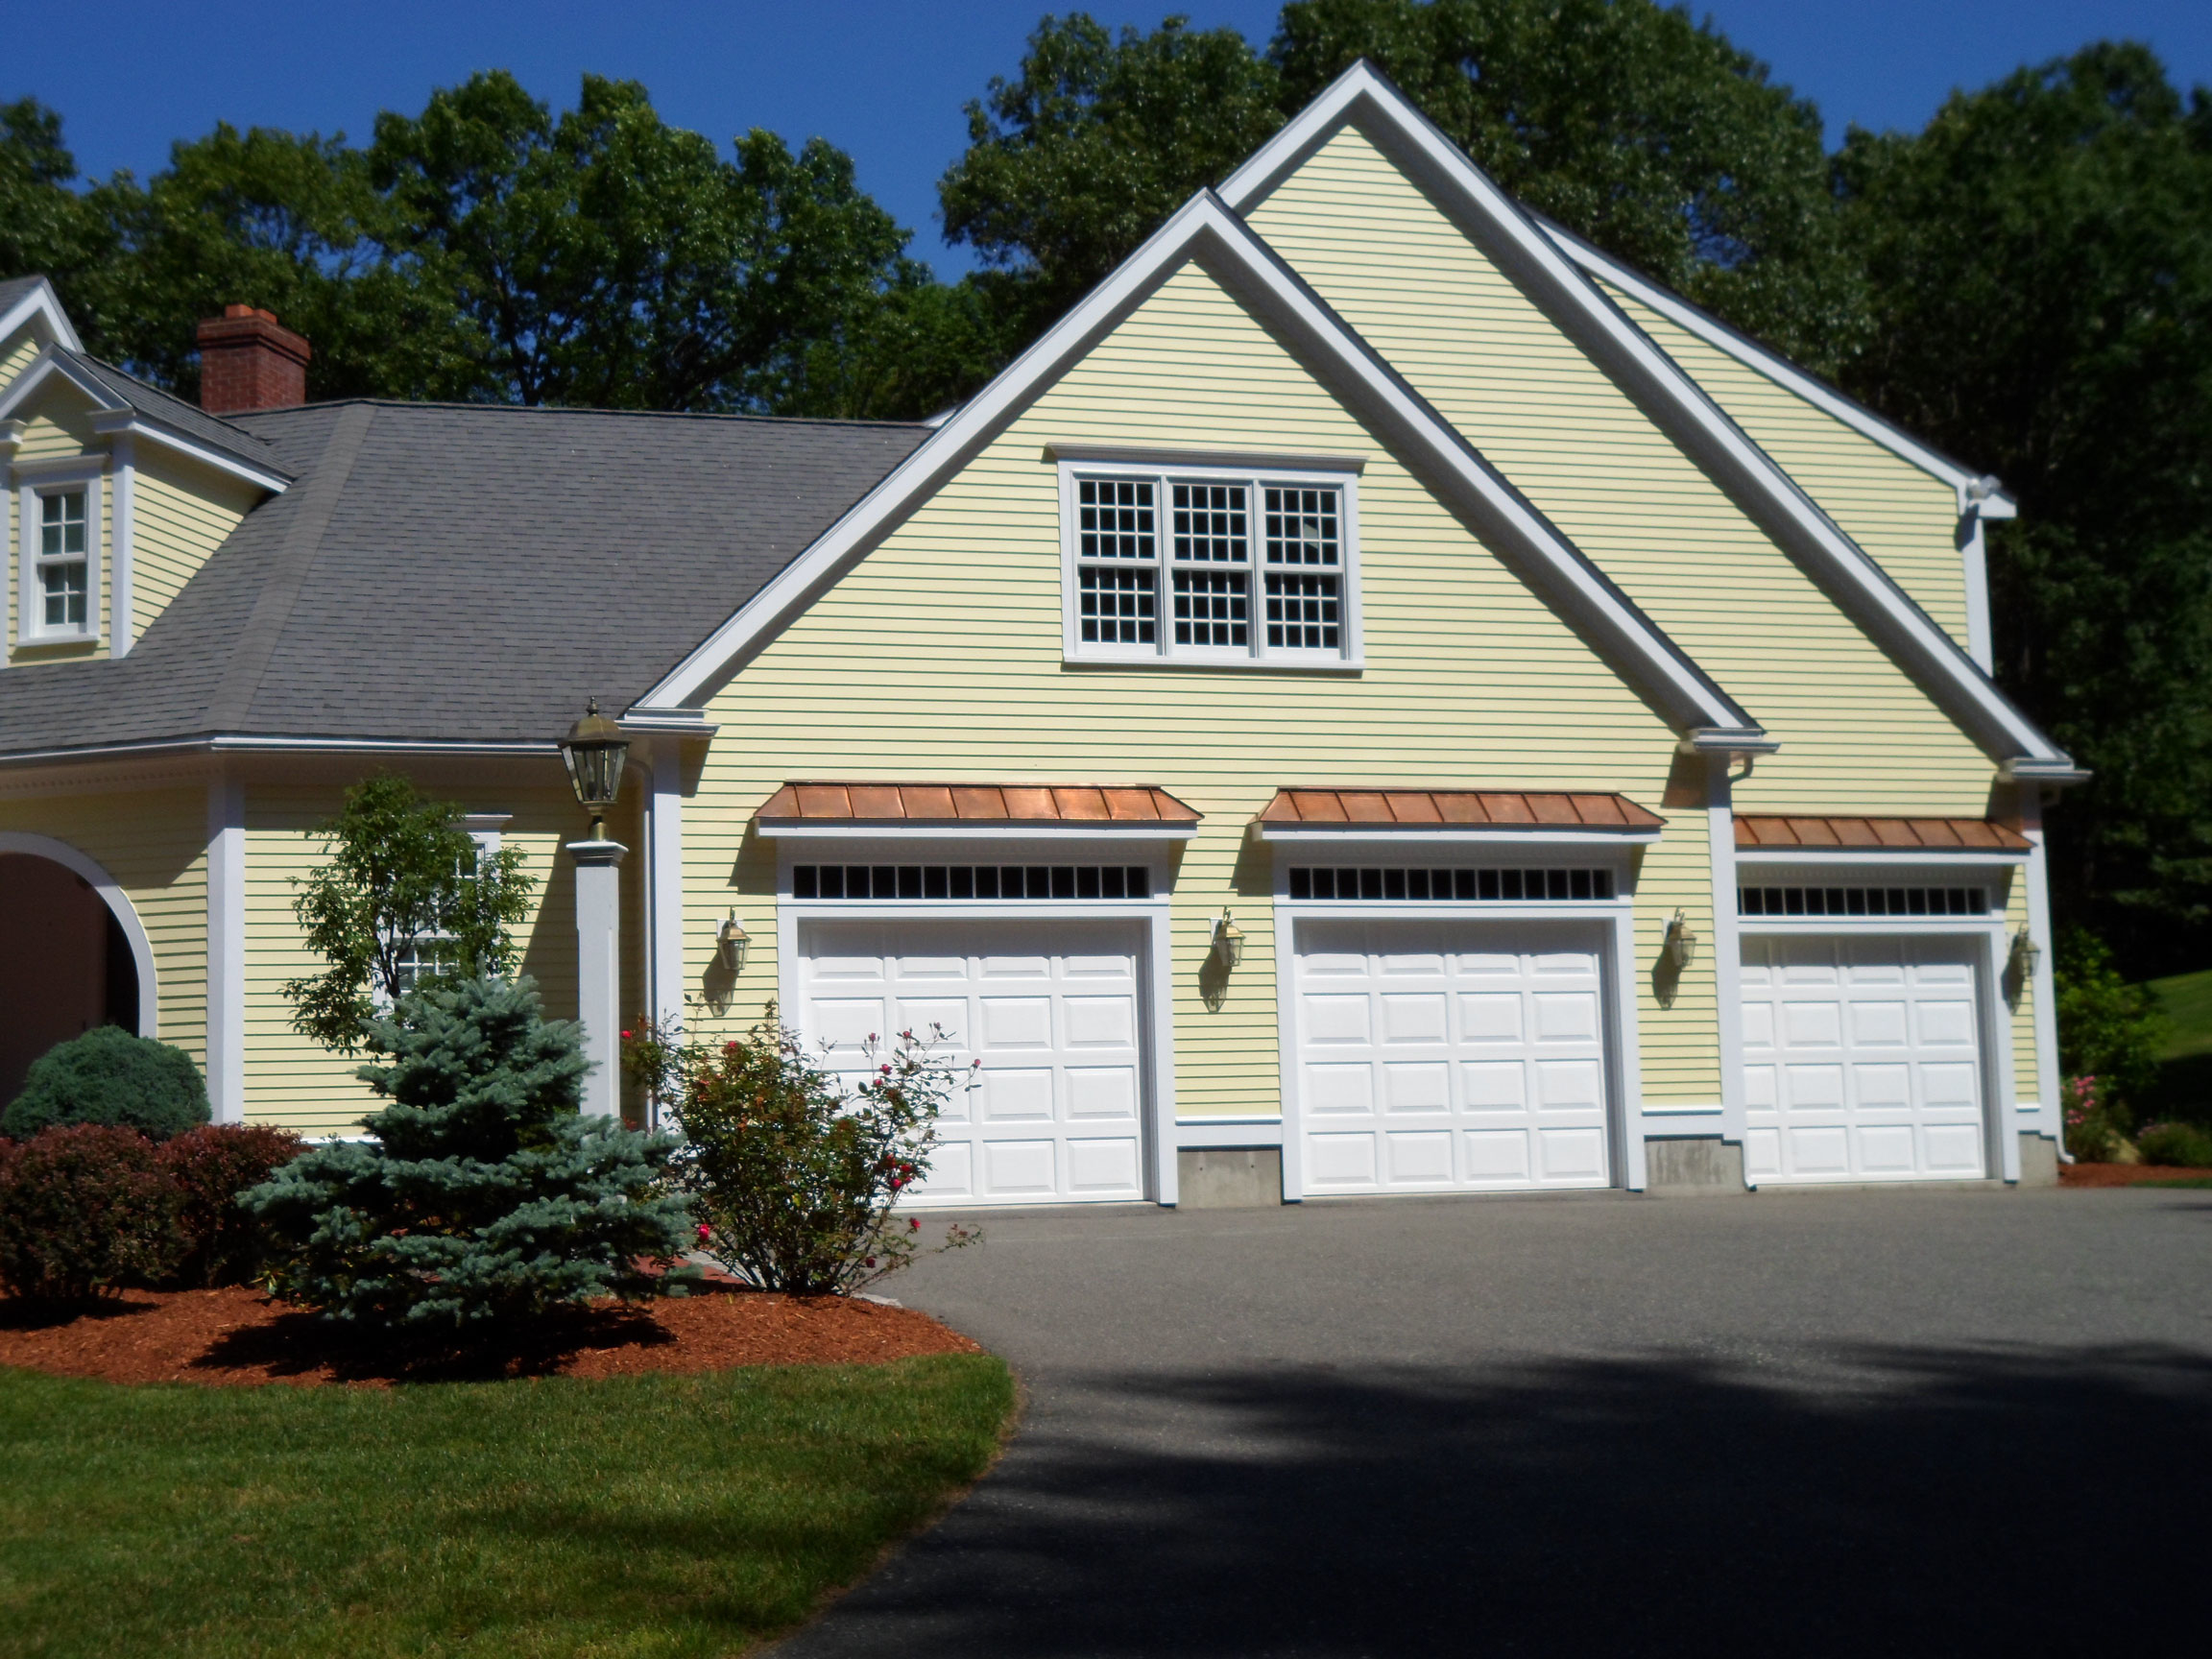 Cairney Painting In Holliston Ma Whitepages